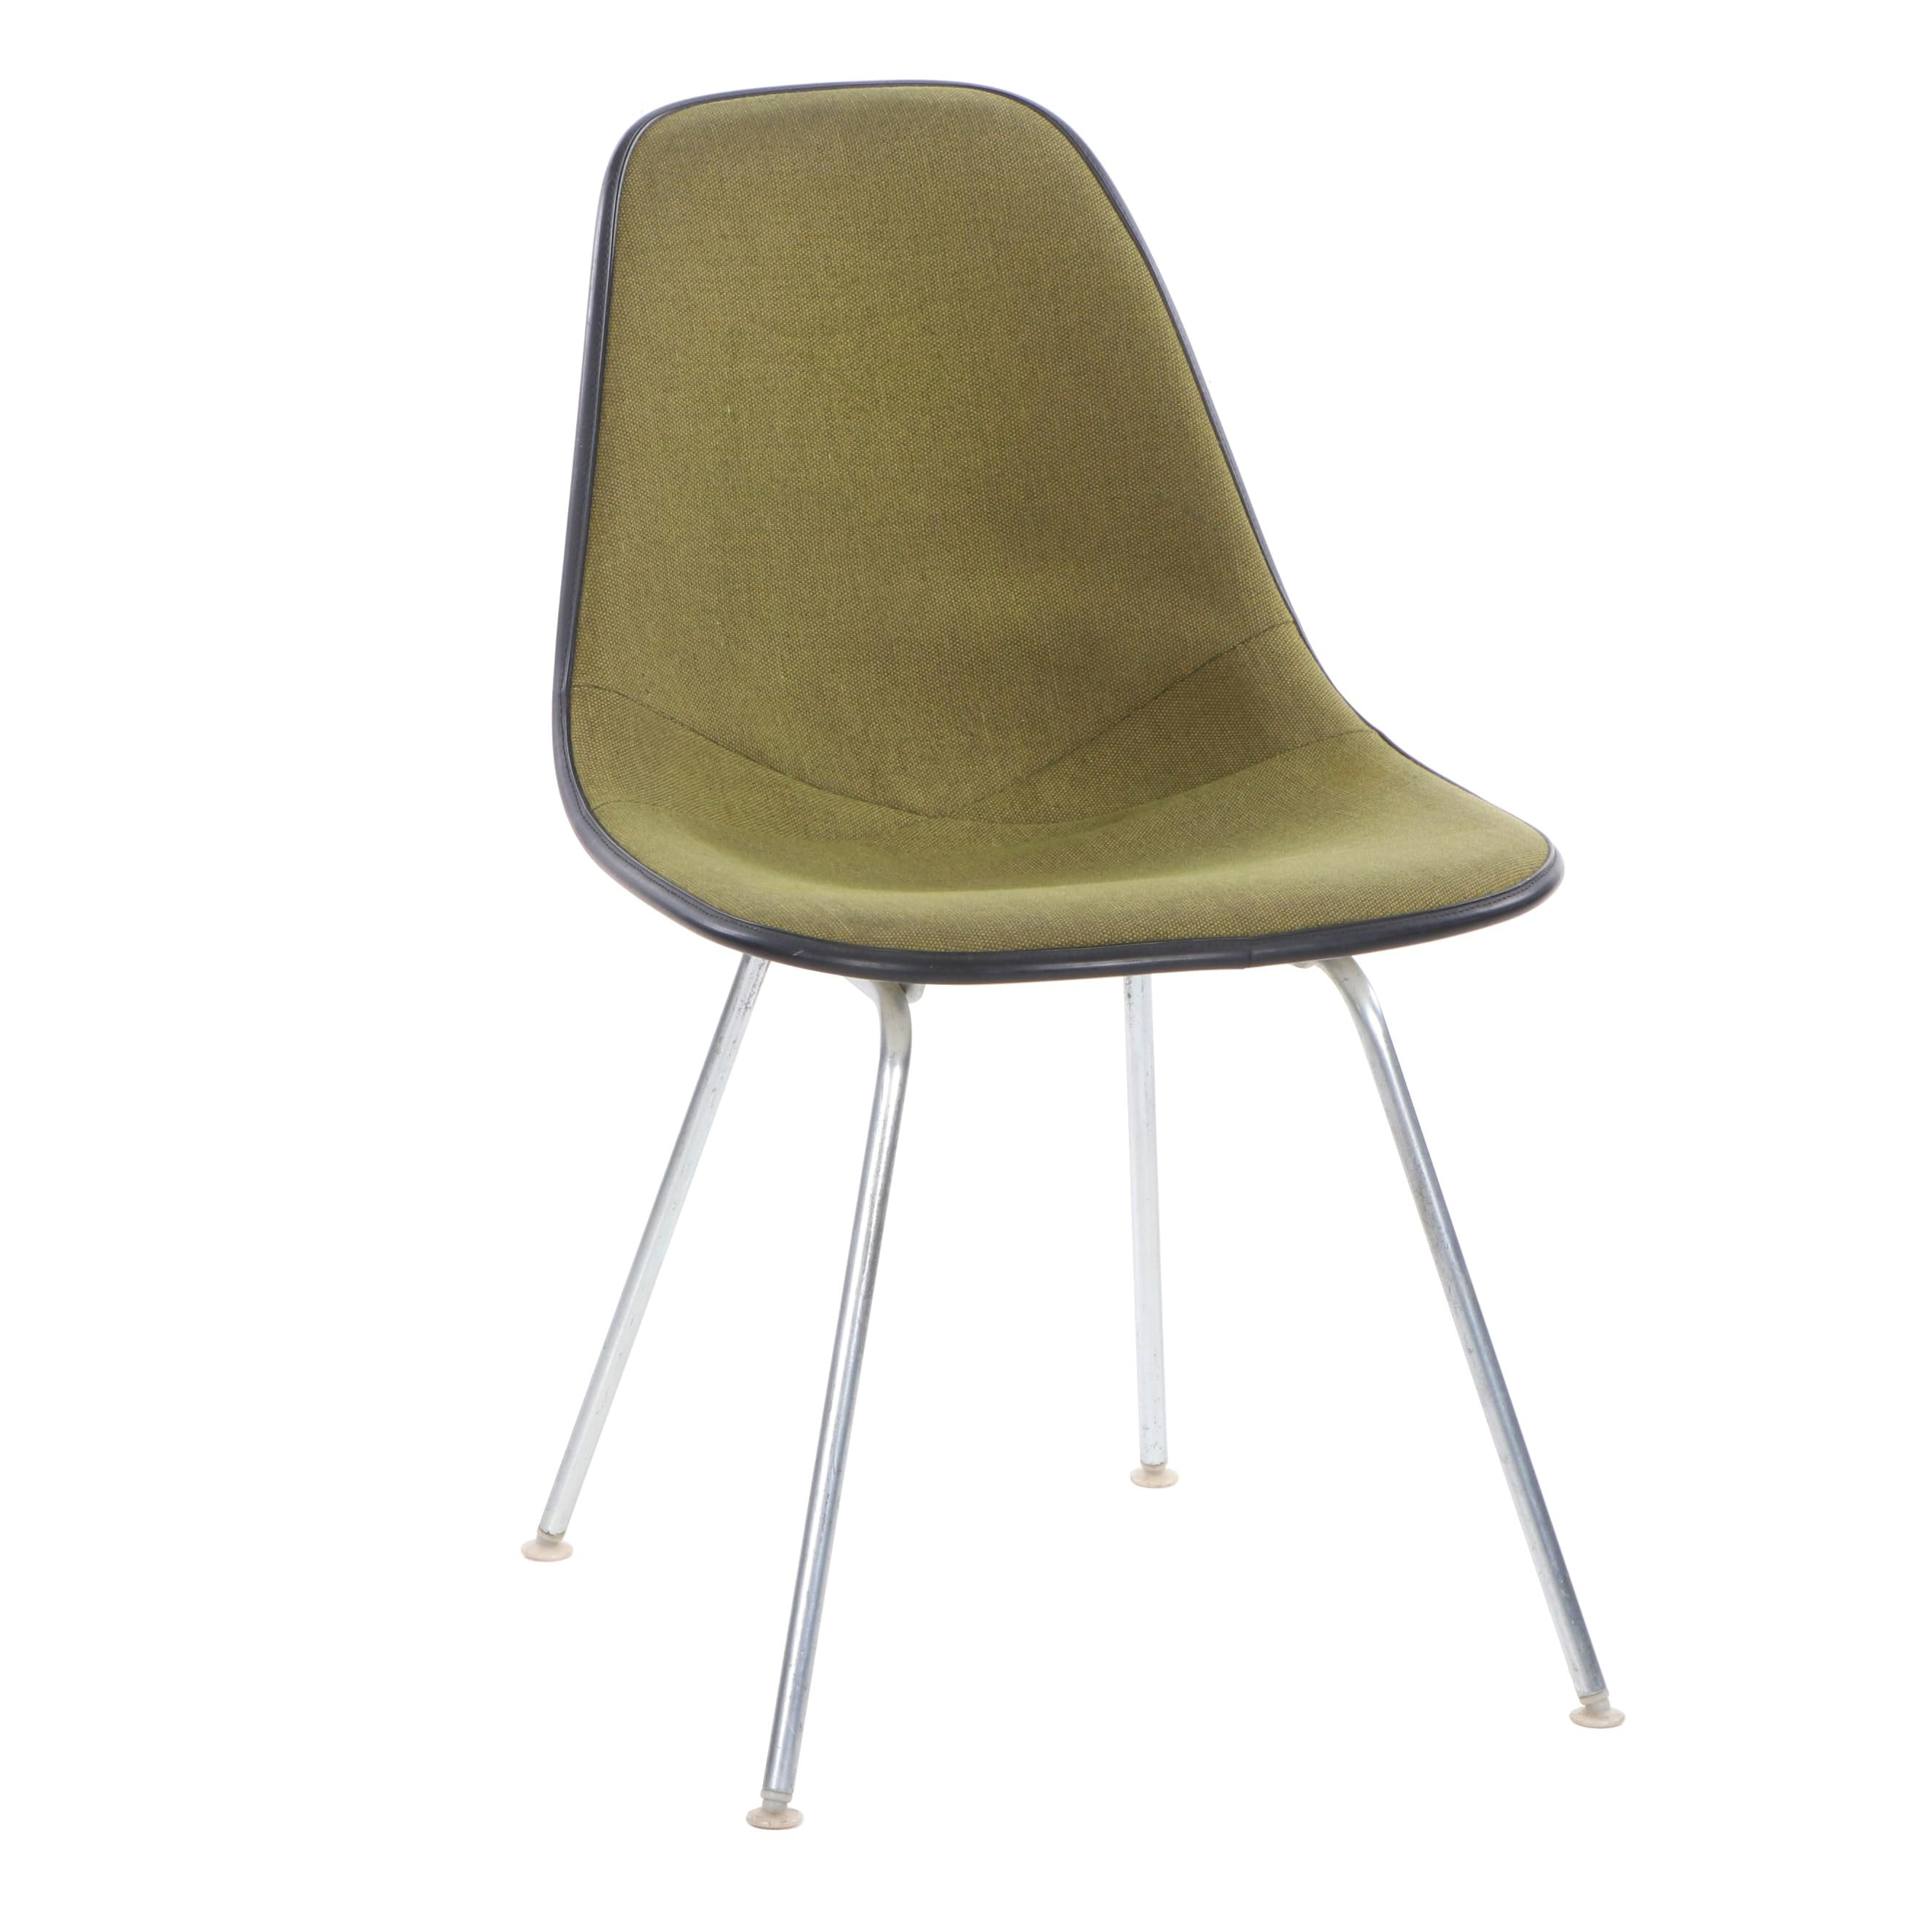 Charles and Ray Eames for Herman Miller Upholstered Fiberglass Side Chair